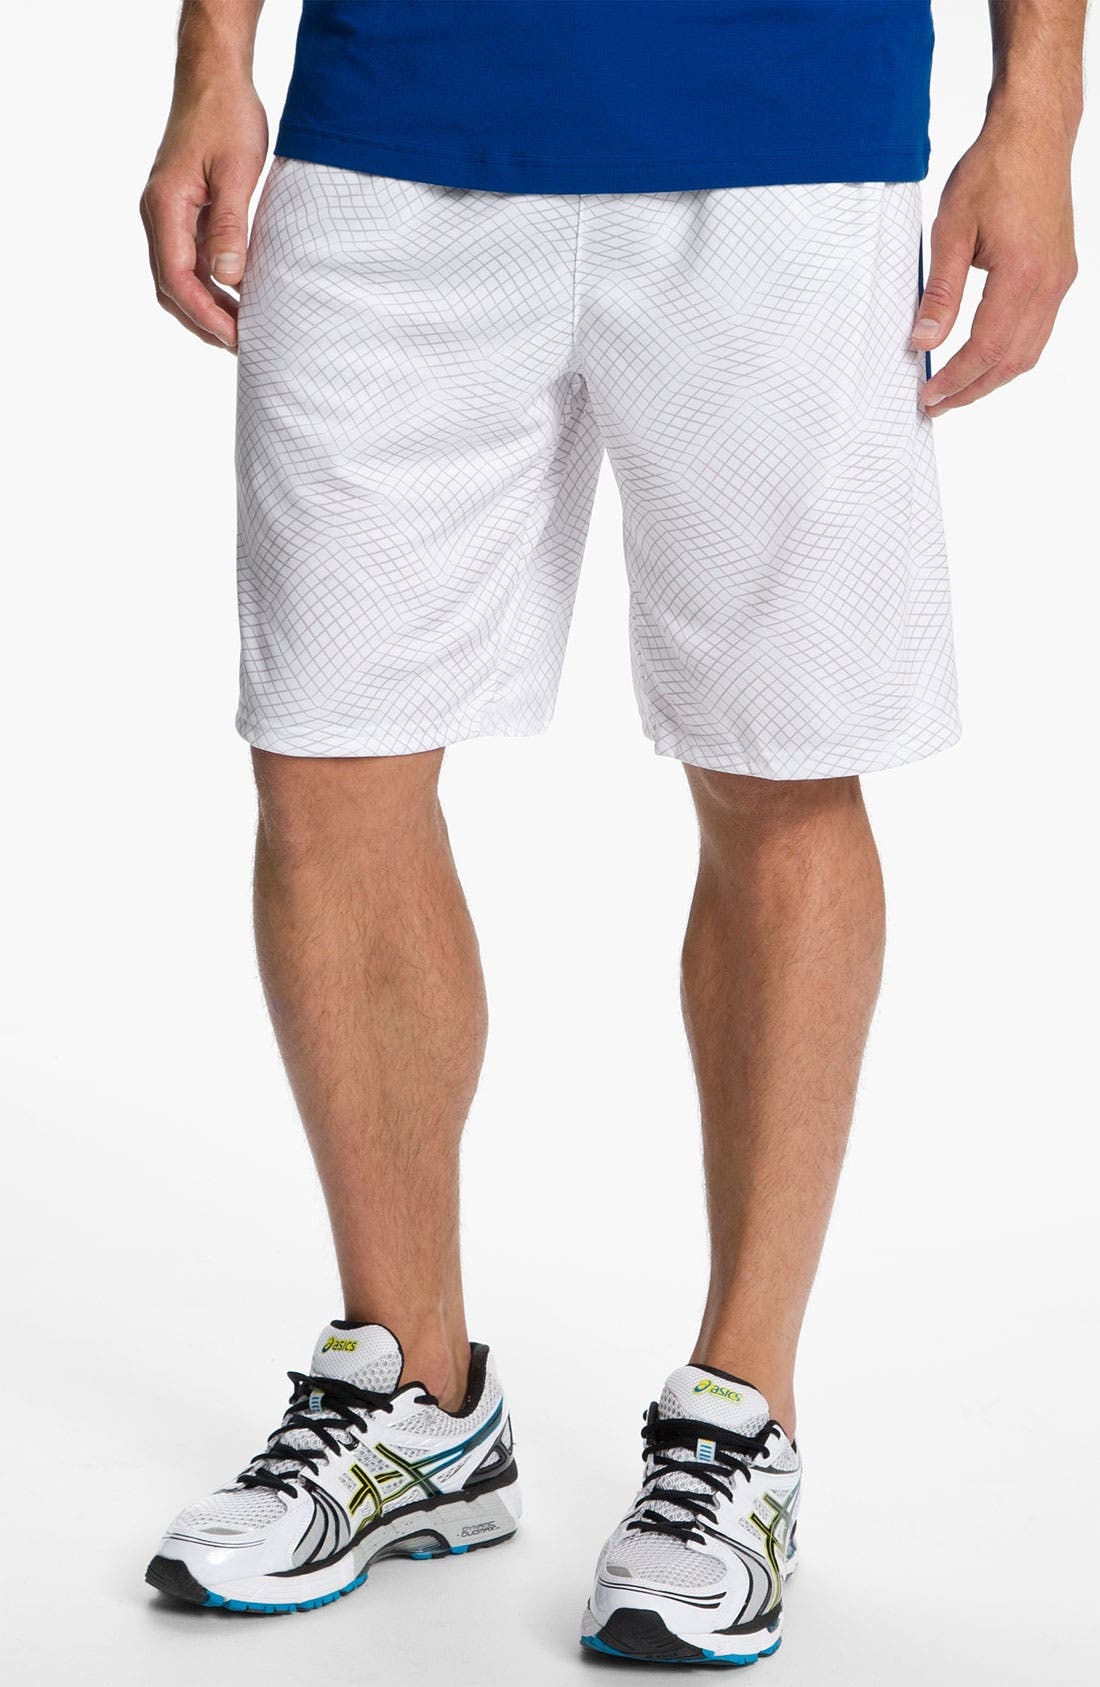 Alternate Image 1 Selected - Under Armour 'Multiplier' Shorts (Online Only)